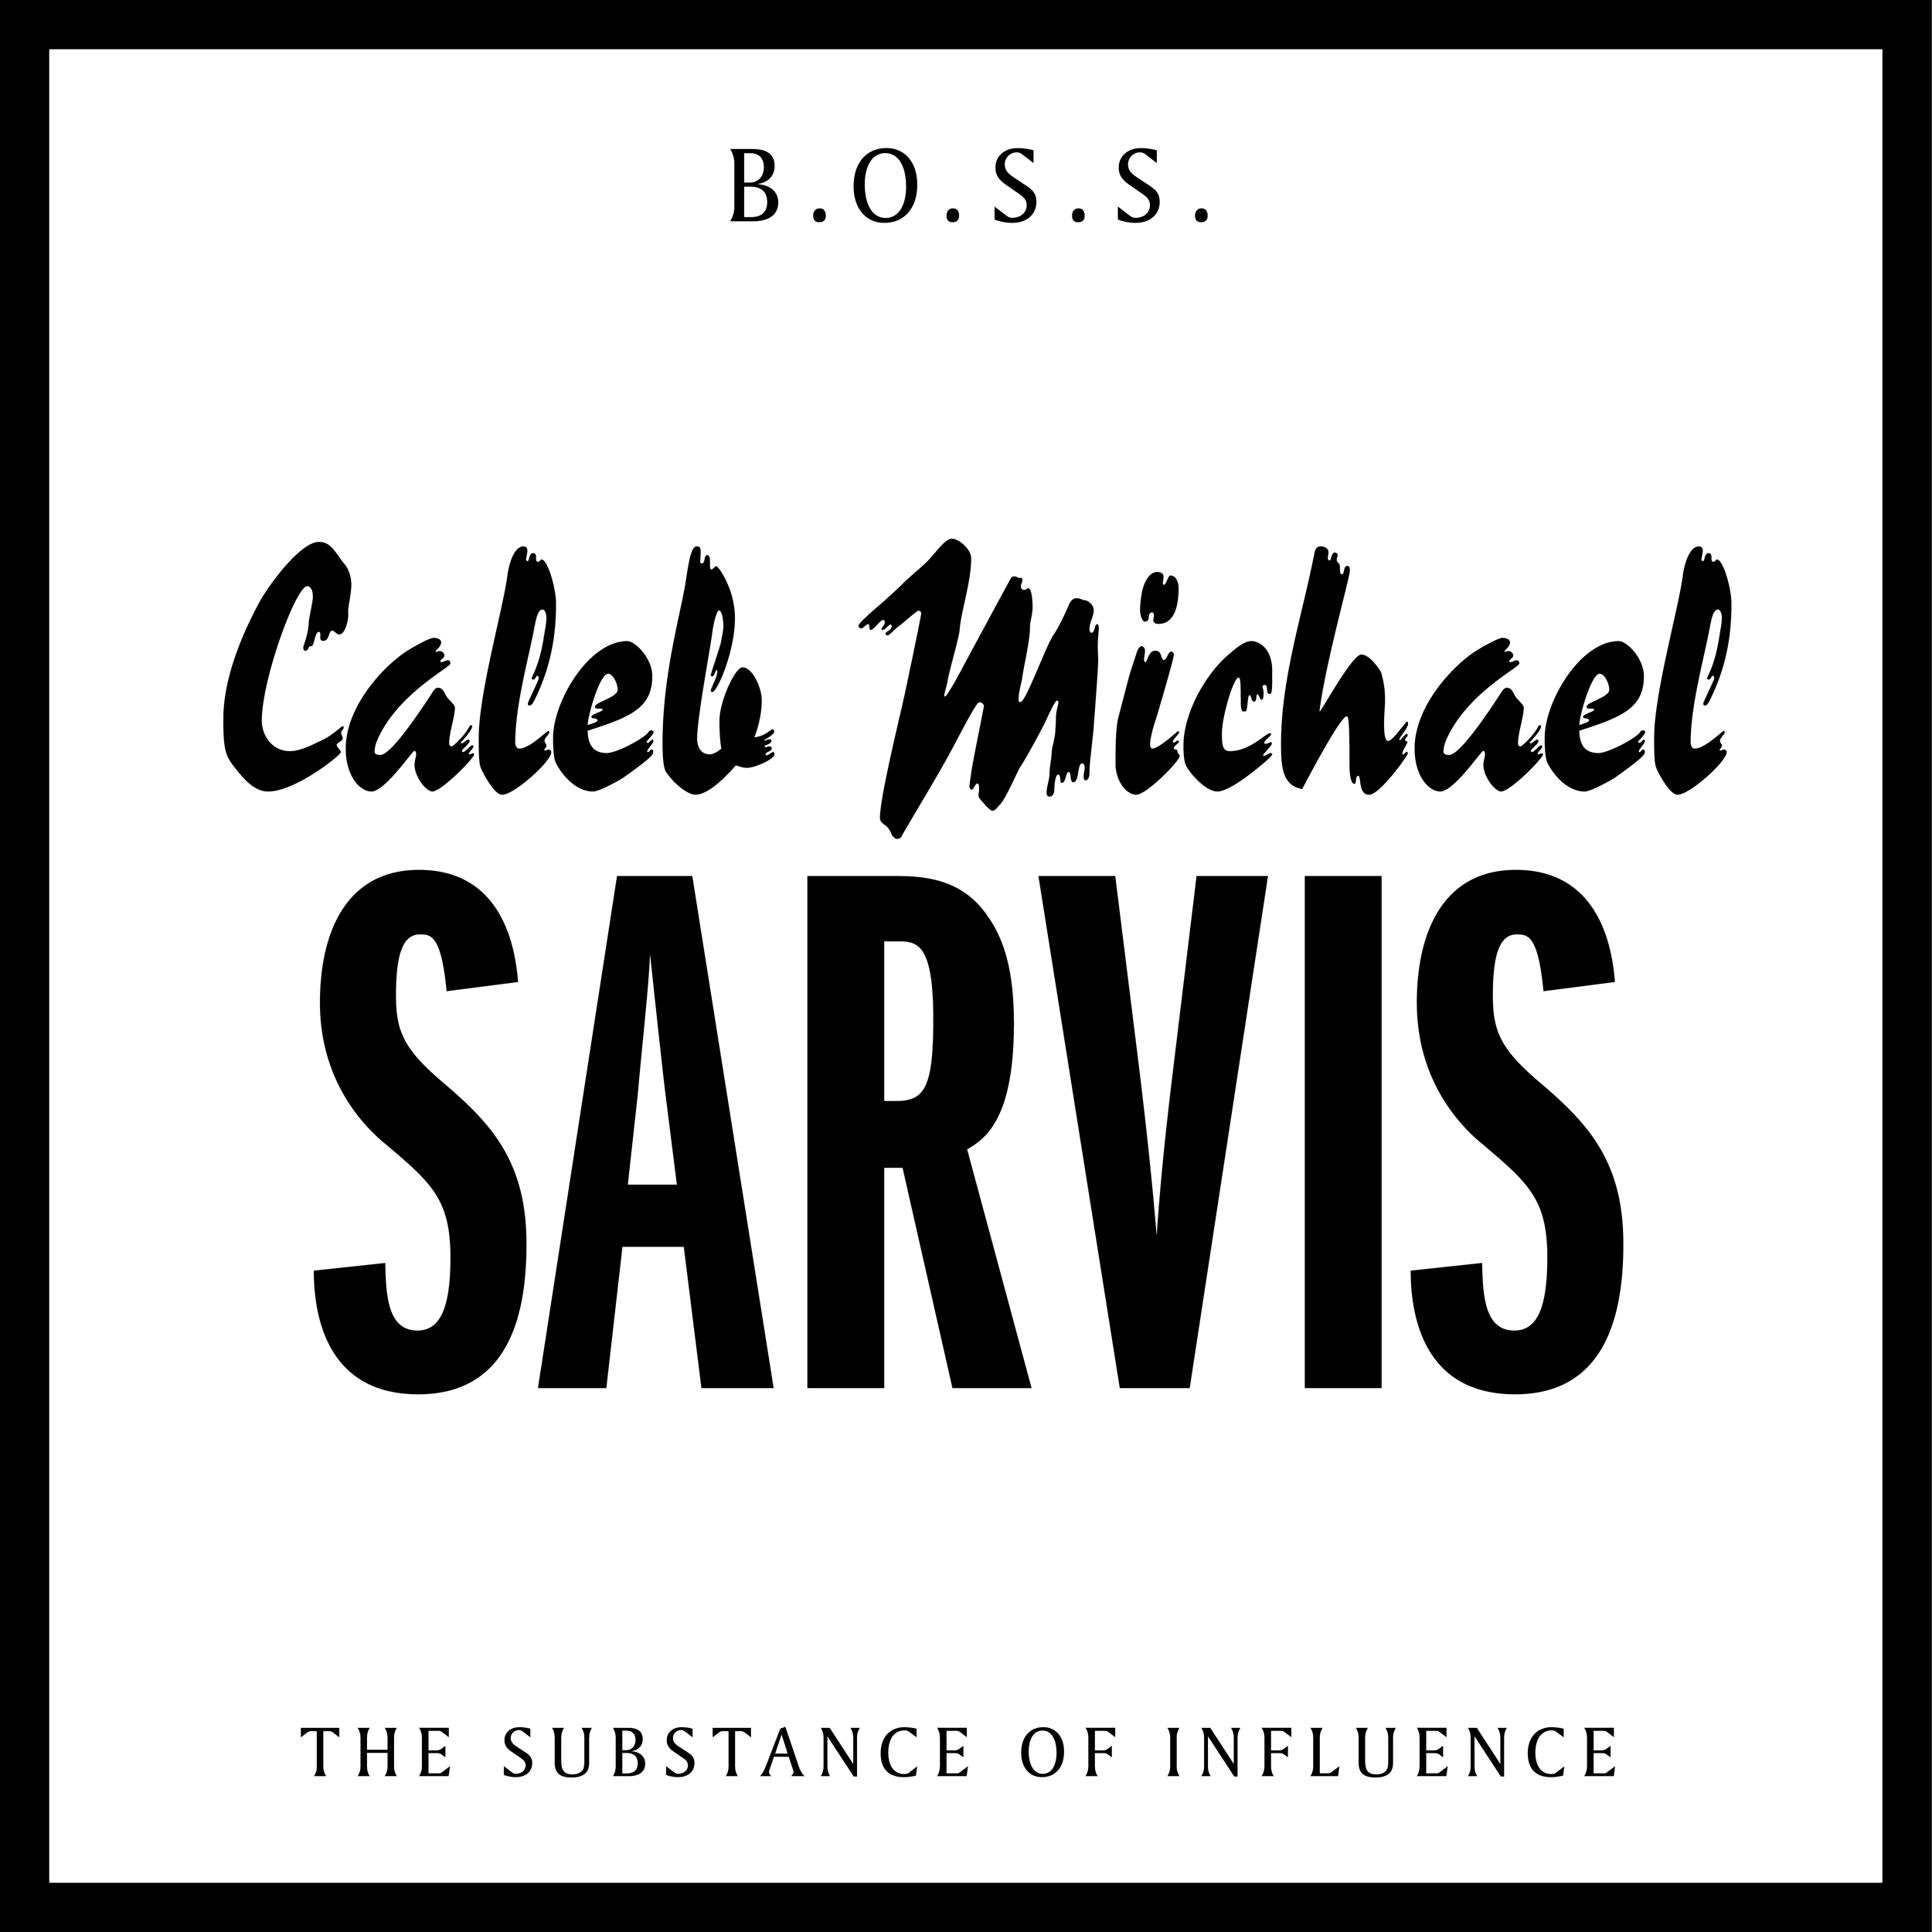 BOSS_TheSubstanceofInfluence_CalebMichaelSarvis_01.png